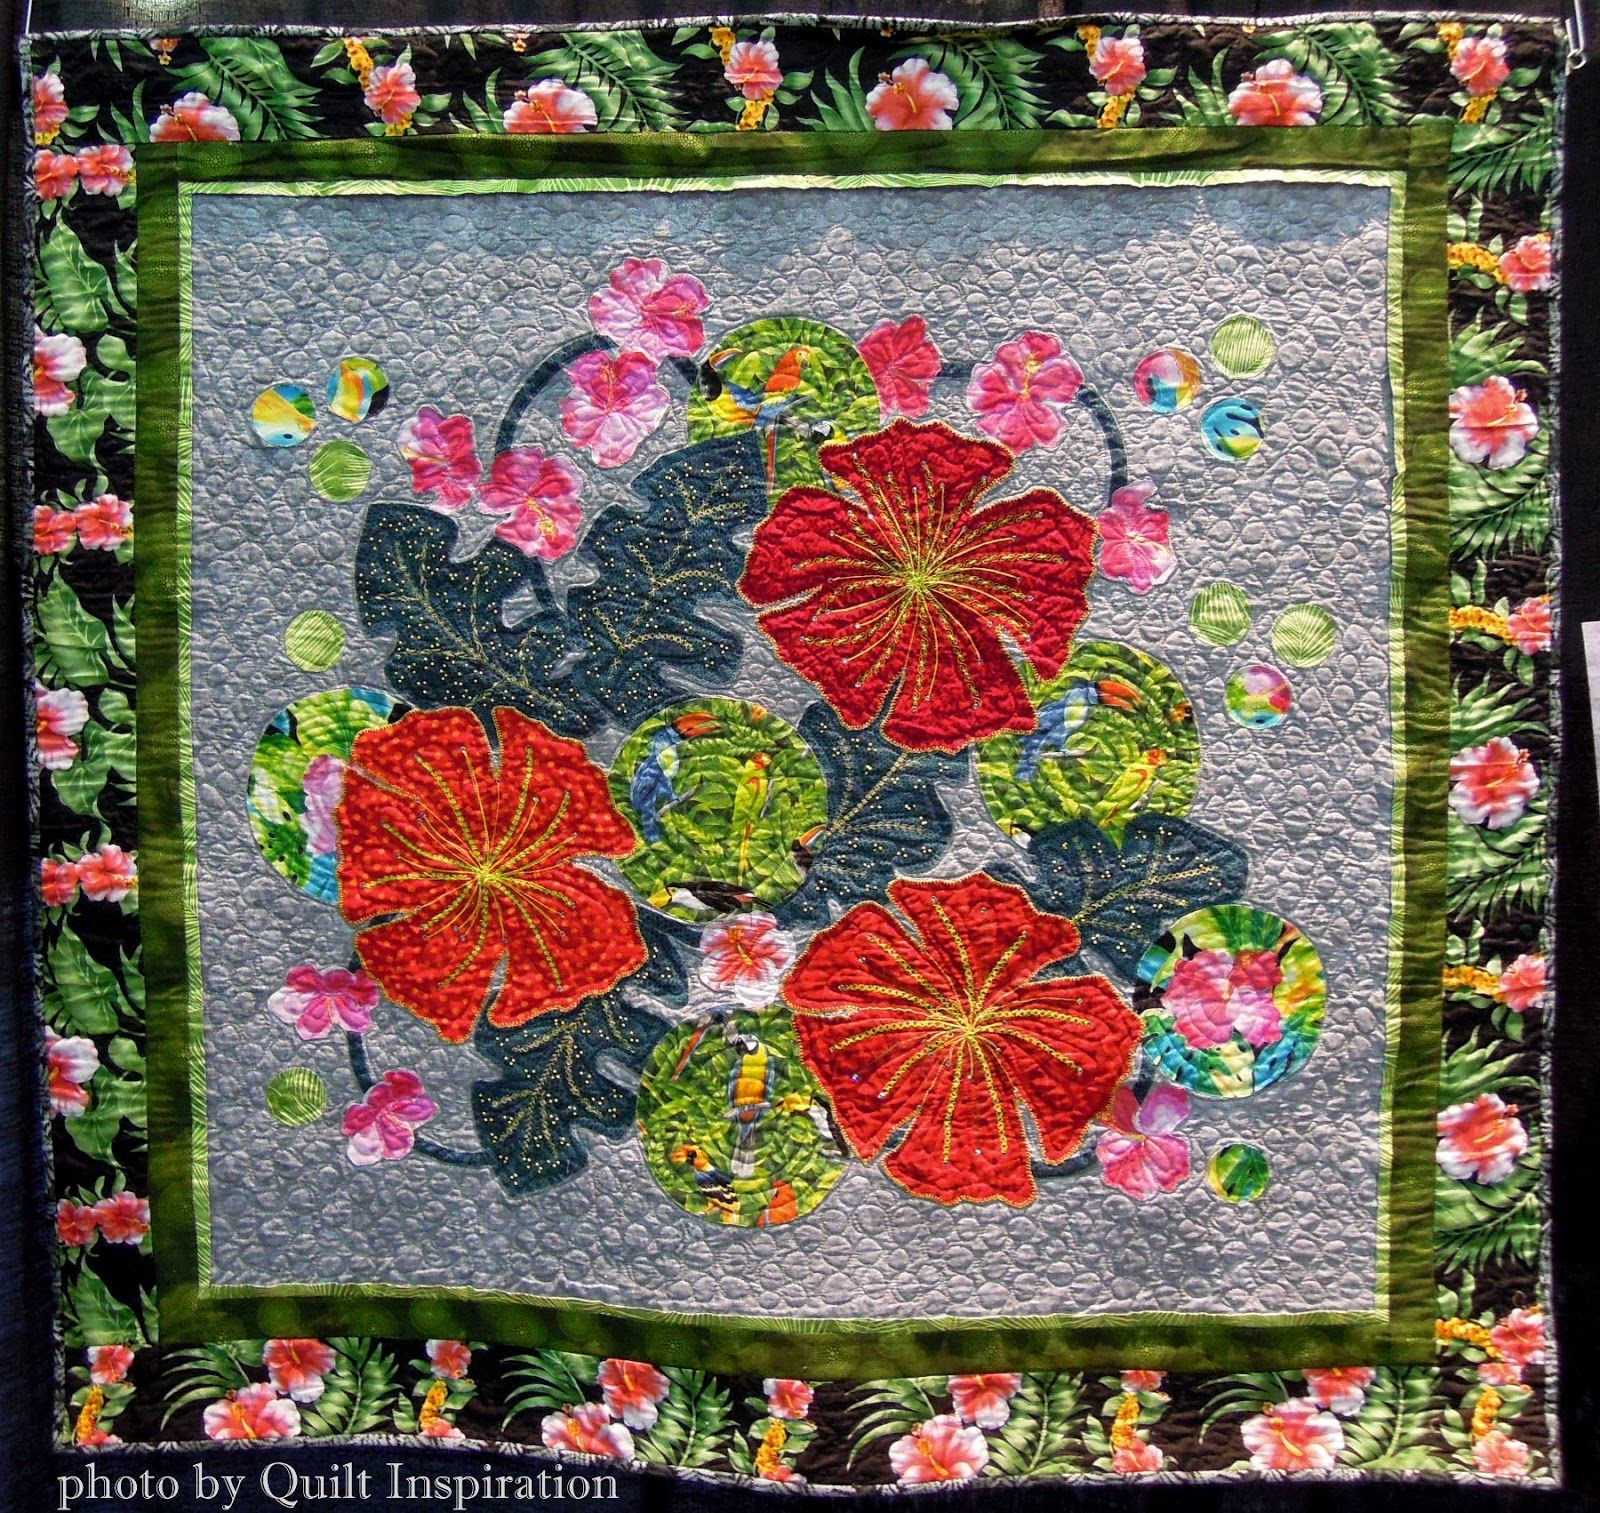 Quilt Inspiration Quilts Of Florida Part 2 In My Garden 48 X 46